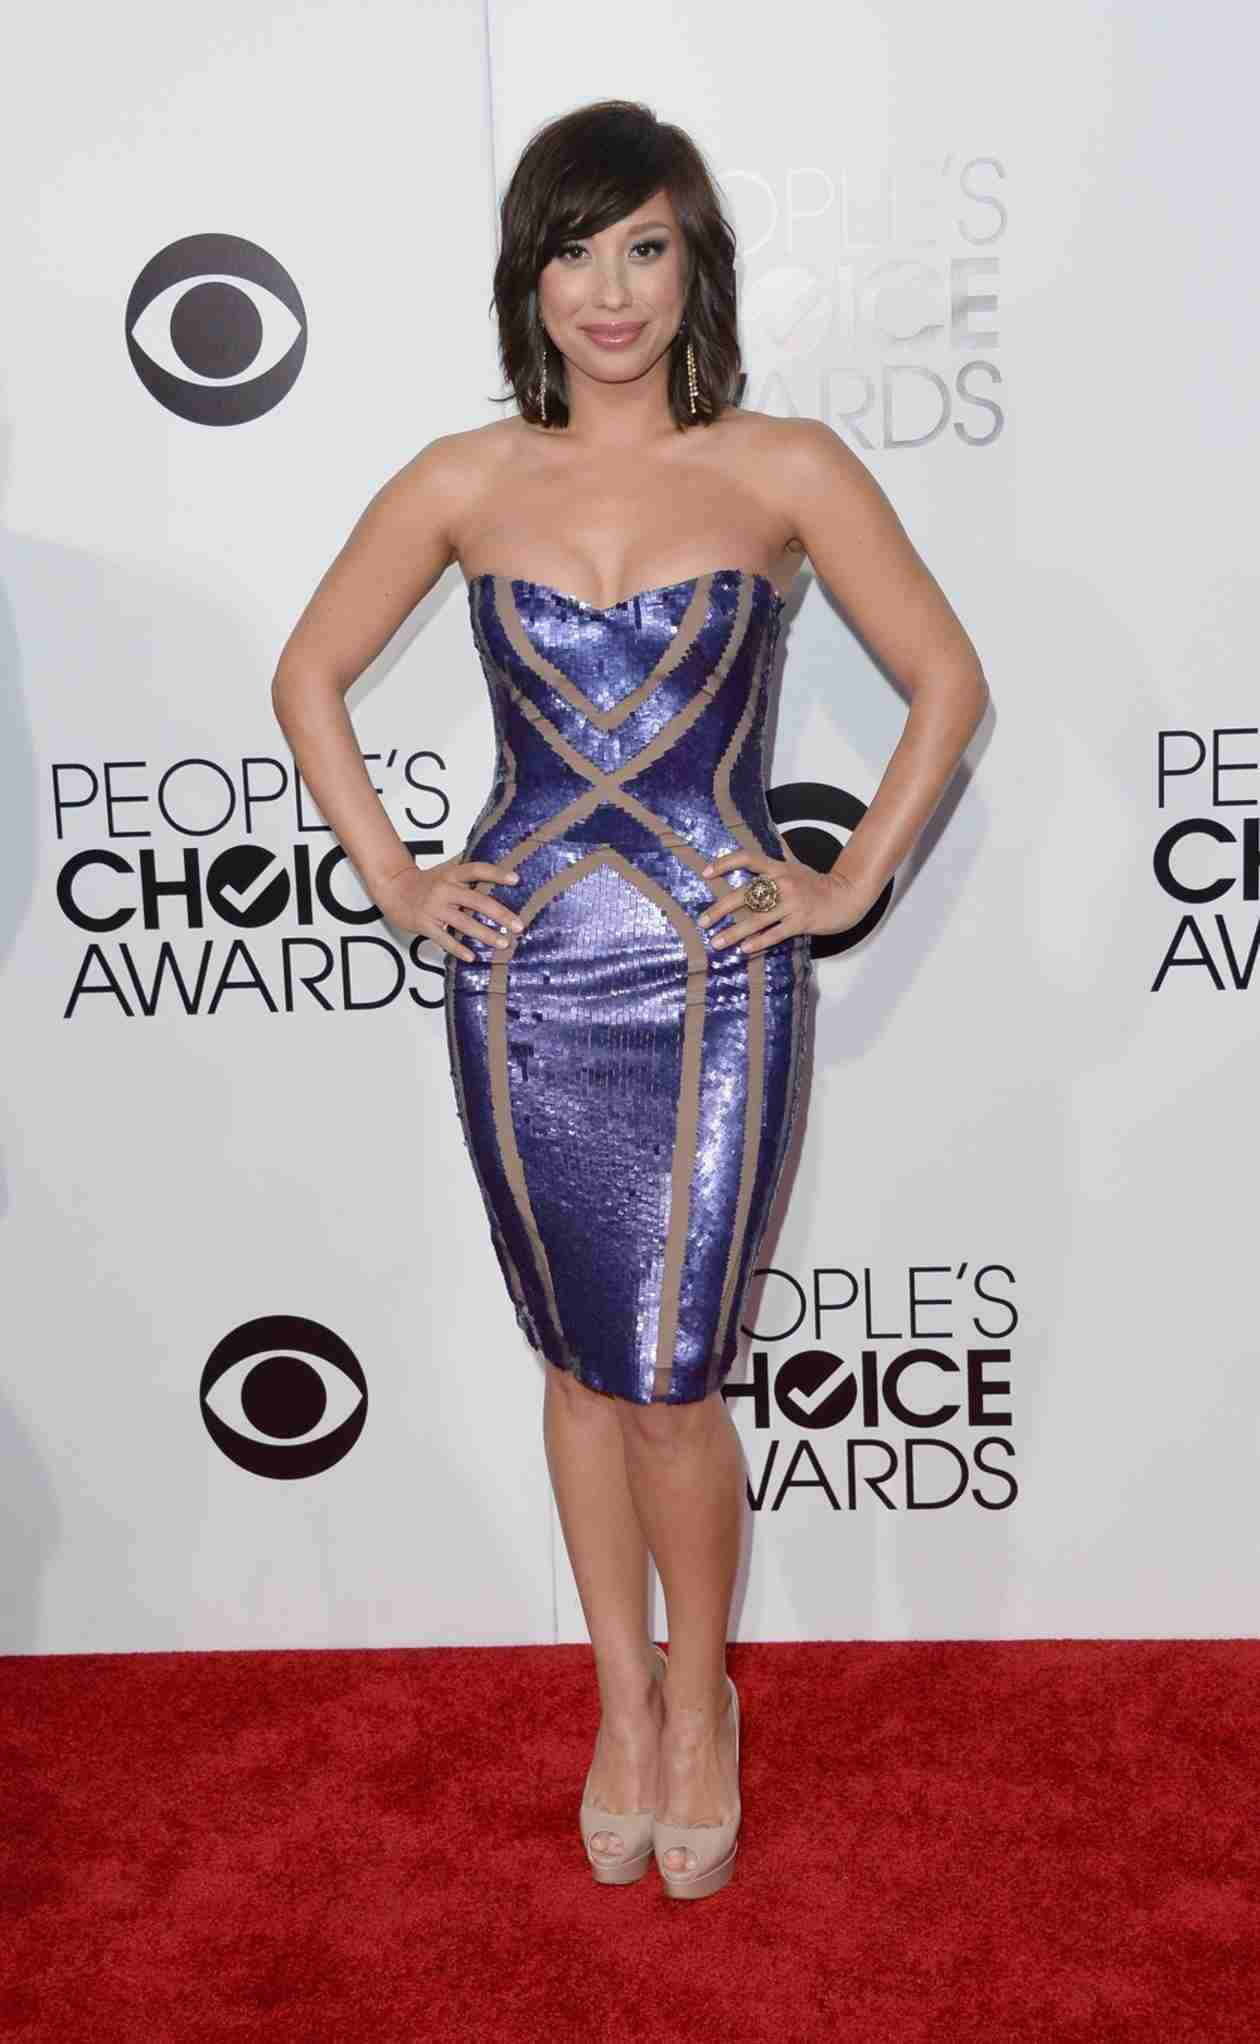 Dancing With the Stars Season 19: Cheryl Burke Almost Didn't Come Back? — Report